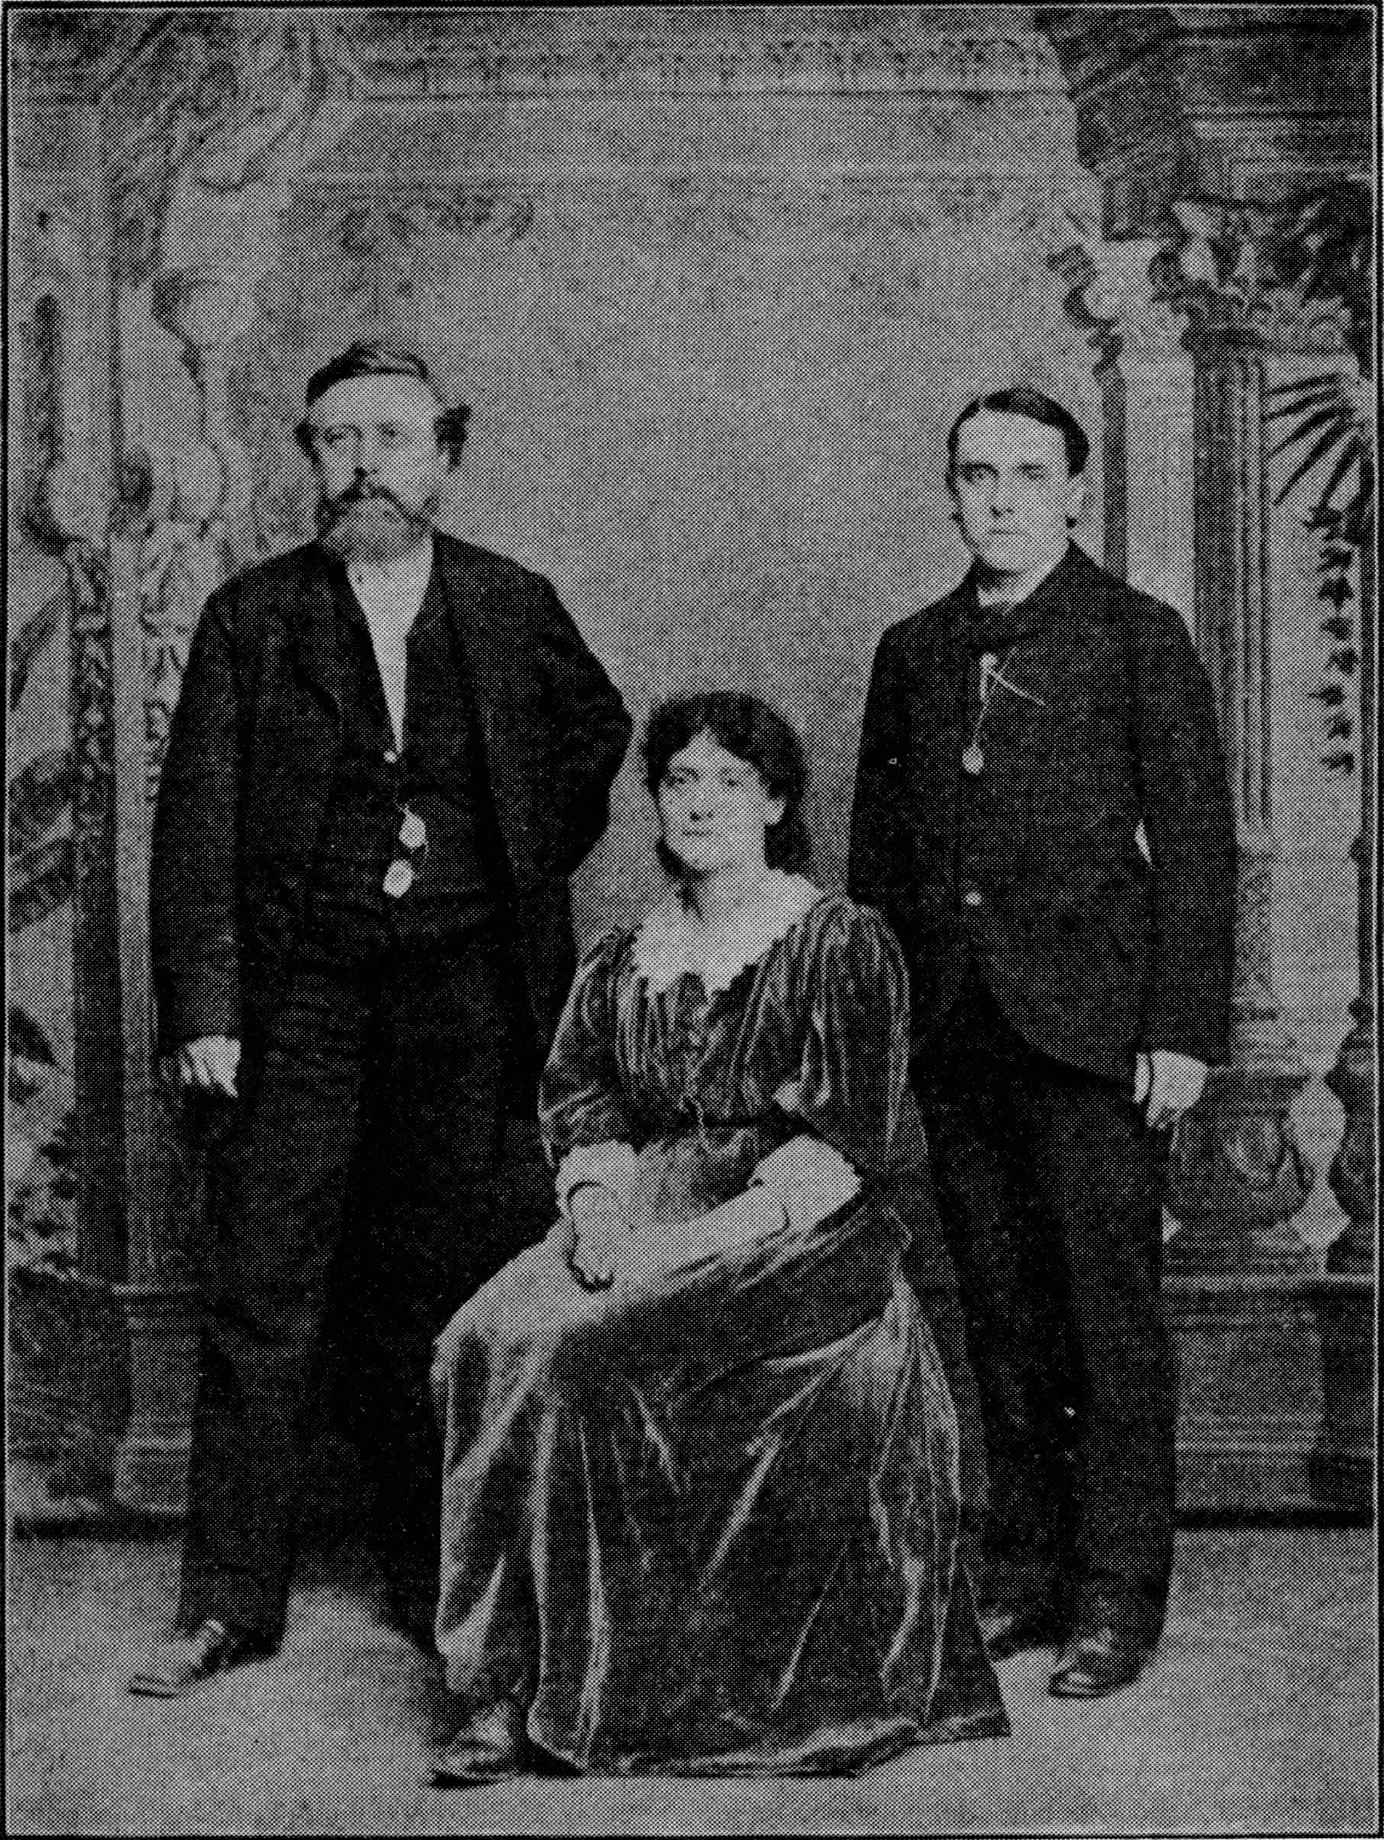 Eleanor Marx (middle) with Wilhelm Liebknecht (left) and Edward Aveling (right) photographed in New York while their tour to America in 1886. Photo: Unknown. Public Domain.